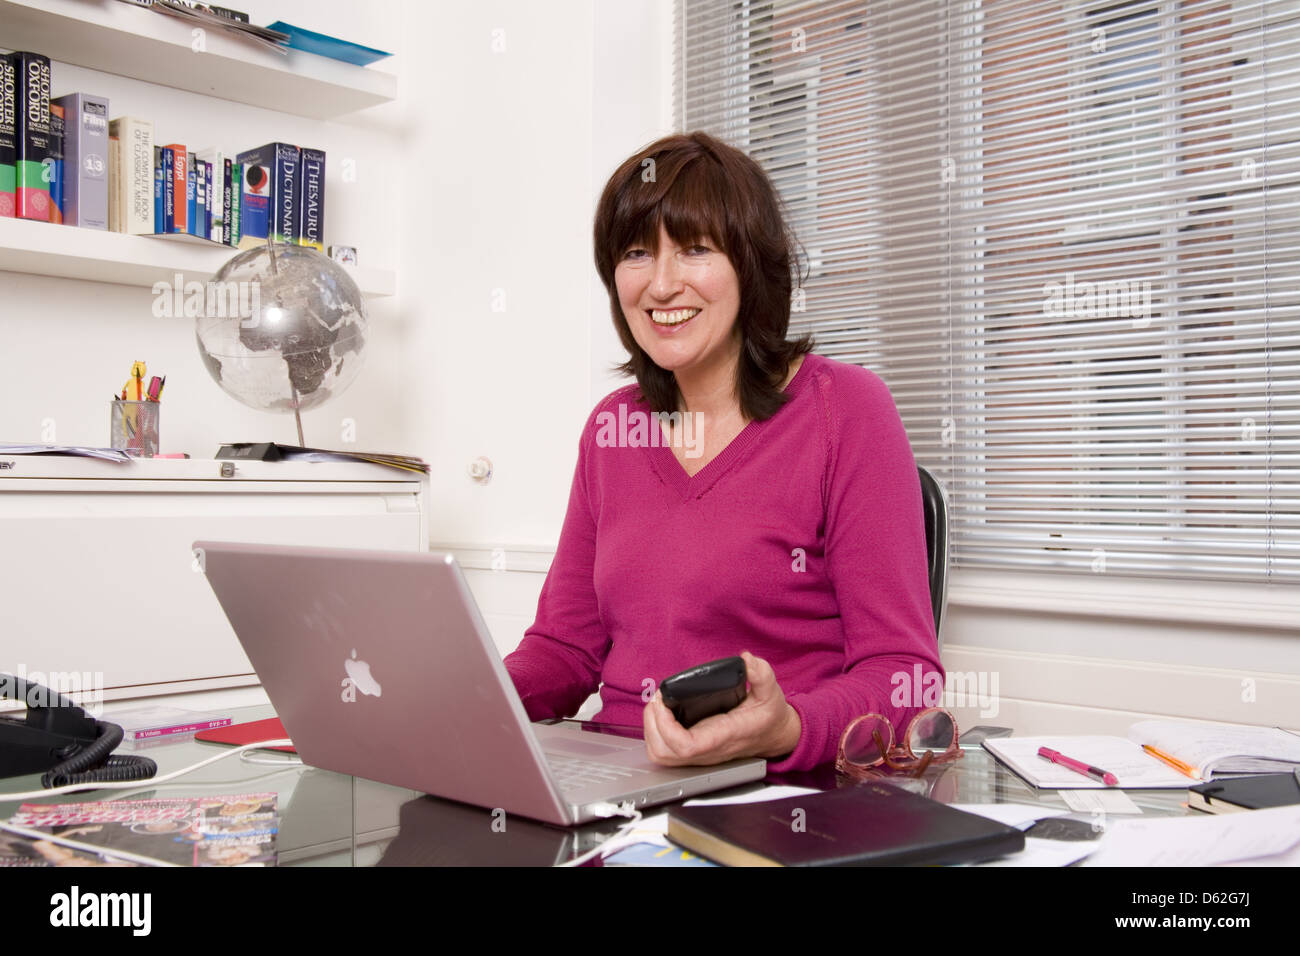 Janet Street-Porter, English media personality, journalist and broadcaster at the office for the deadline TV series,London. - Stock Image